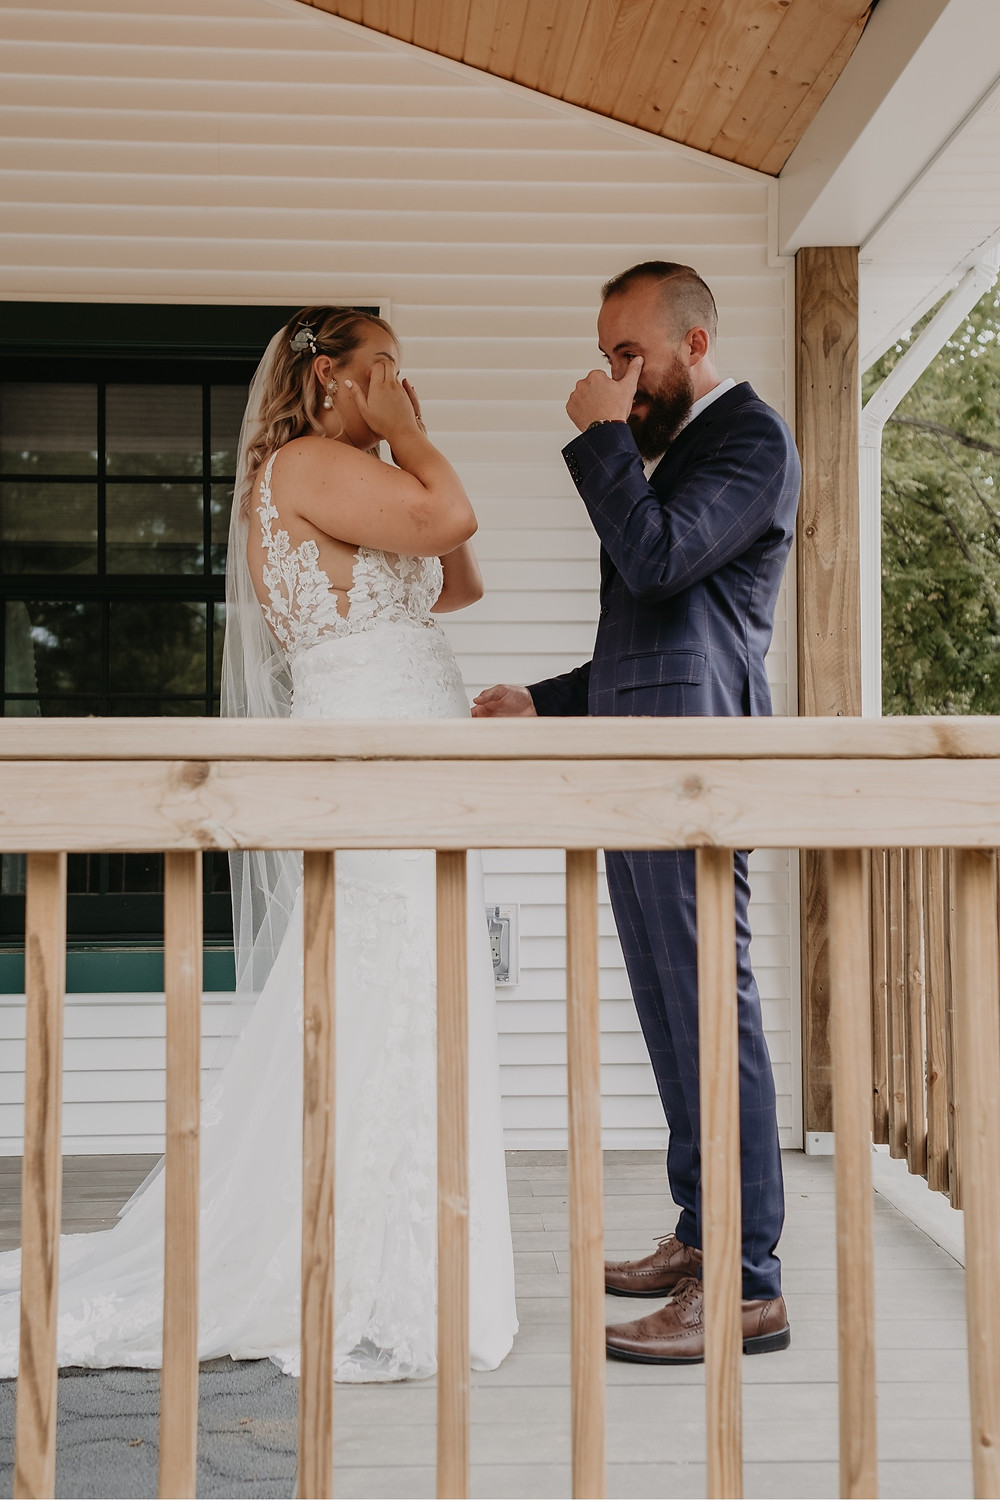 Bride and groom tearing up at seeing each other for the first time on wedding day. Photographed by Nicole Leanne Photography.